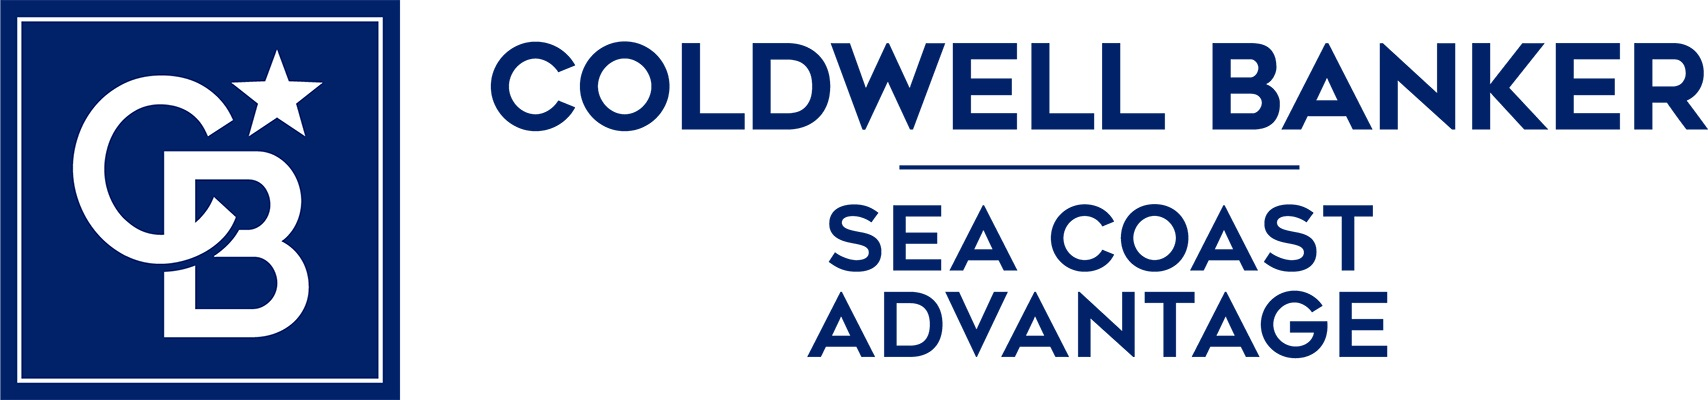 April Annas - Coldwell Banker Sea Coast Advantage Realty Logo